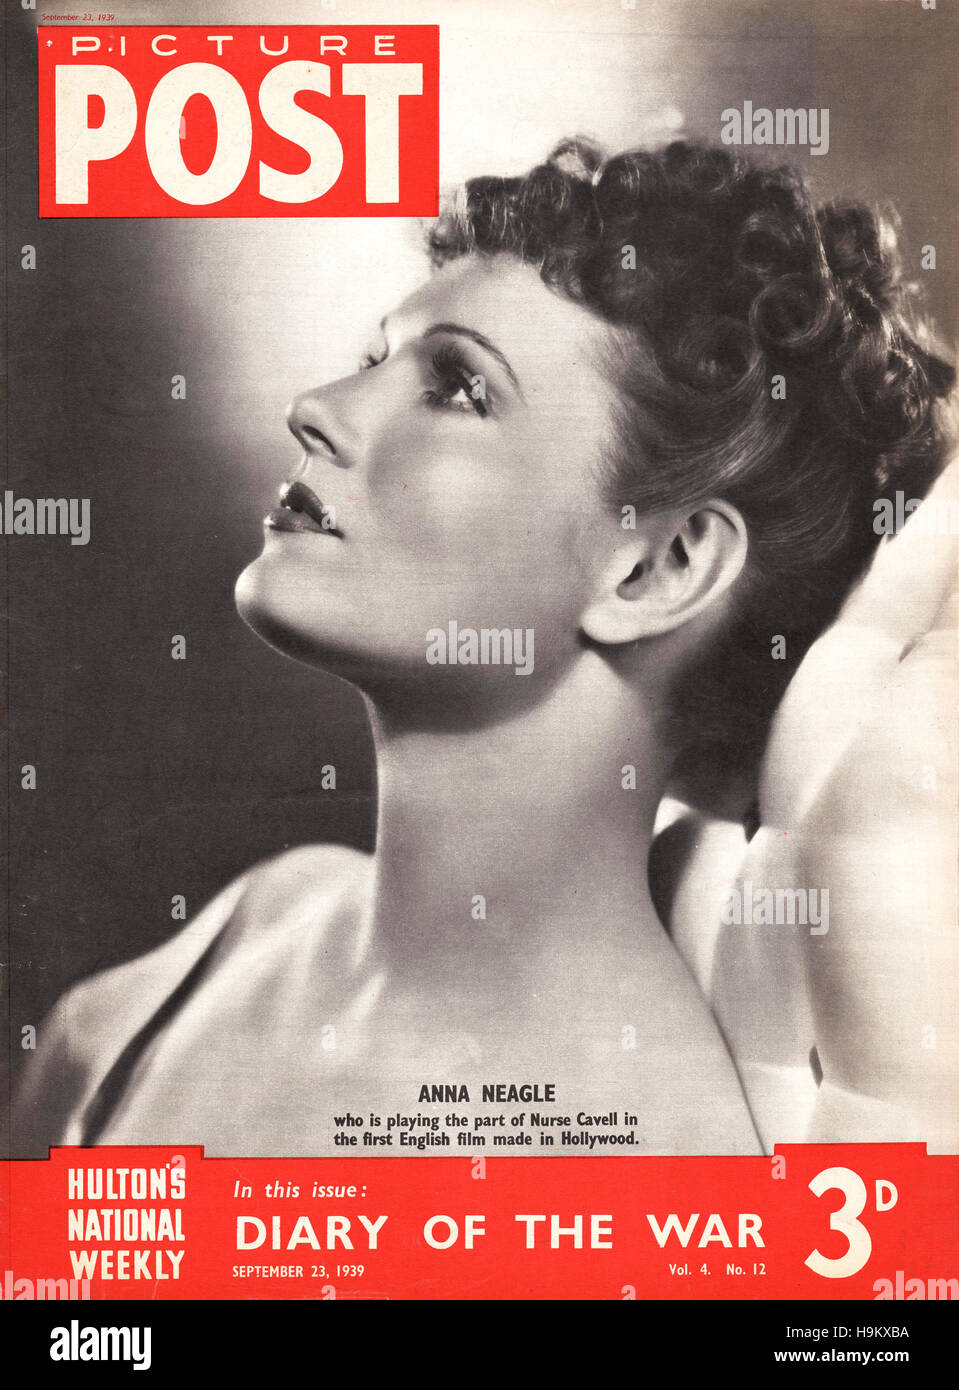 1939 Picture Post Actress Anna Neagle - Stock Image